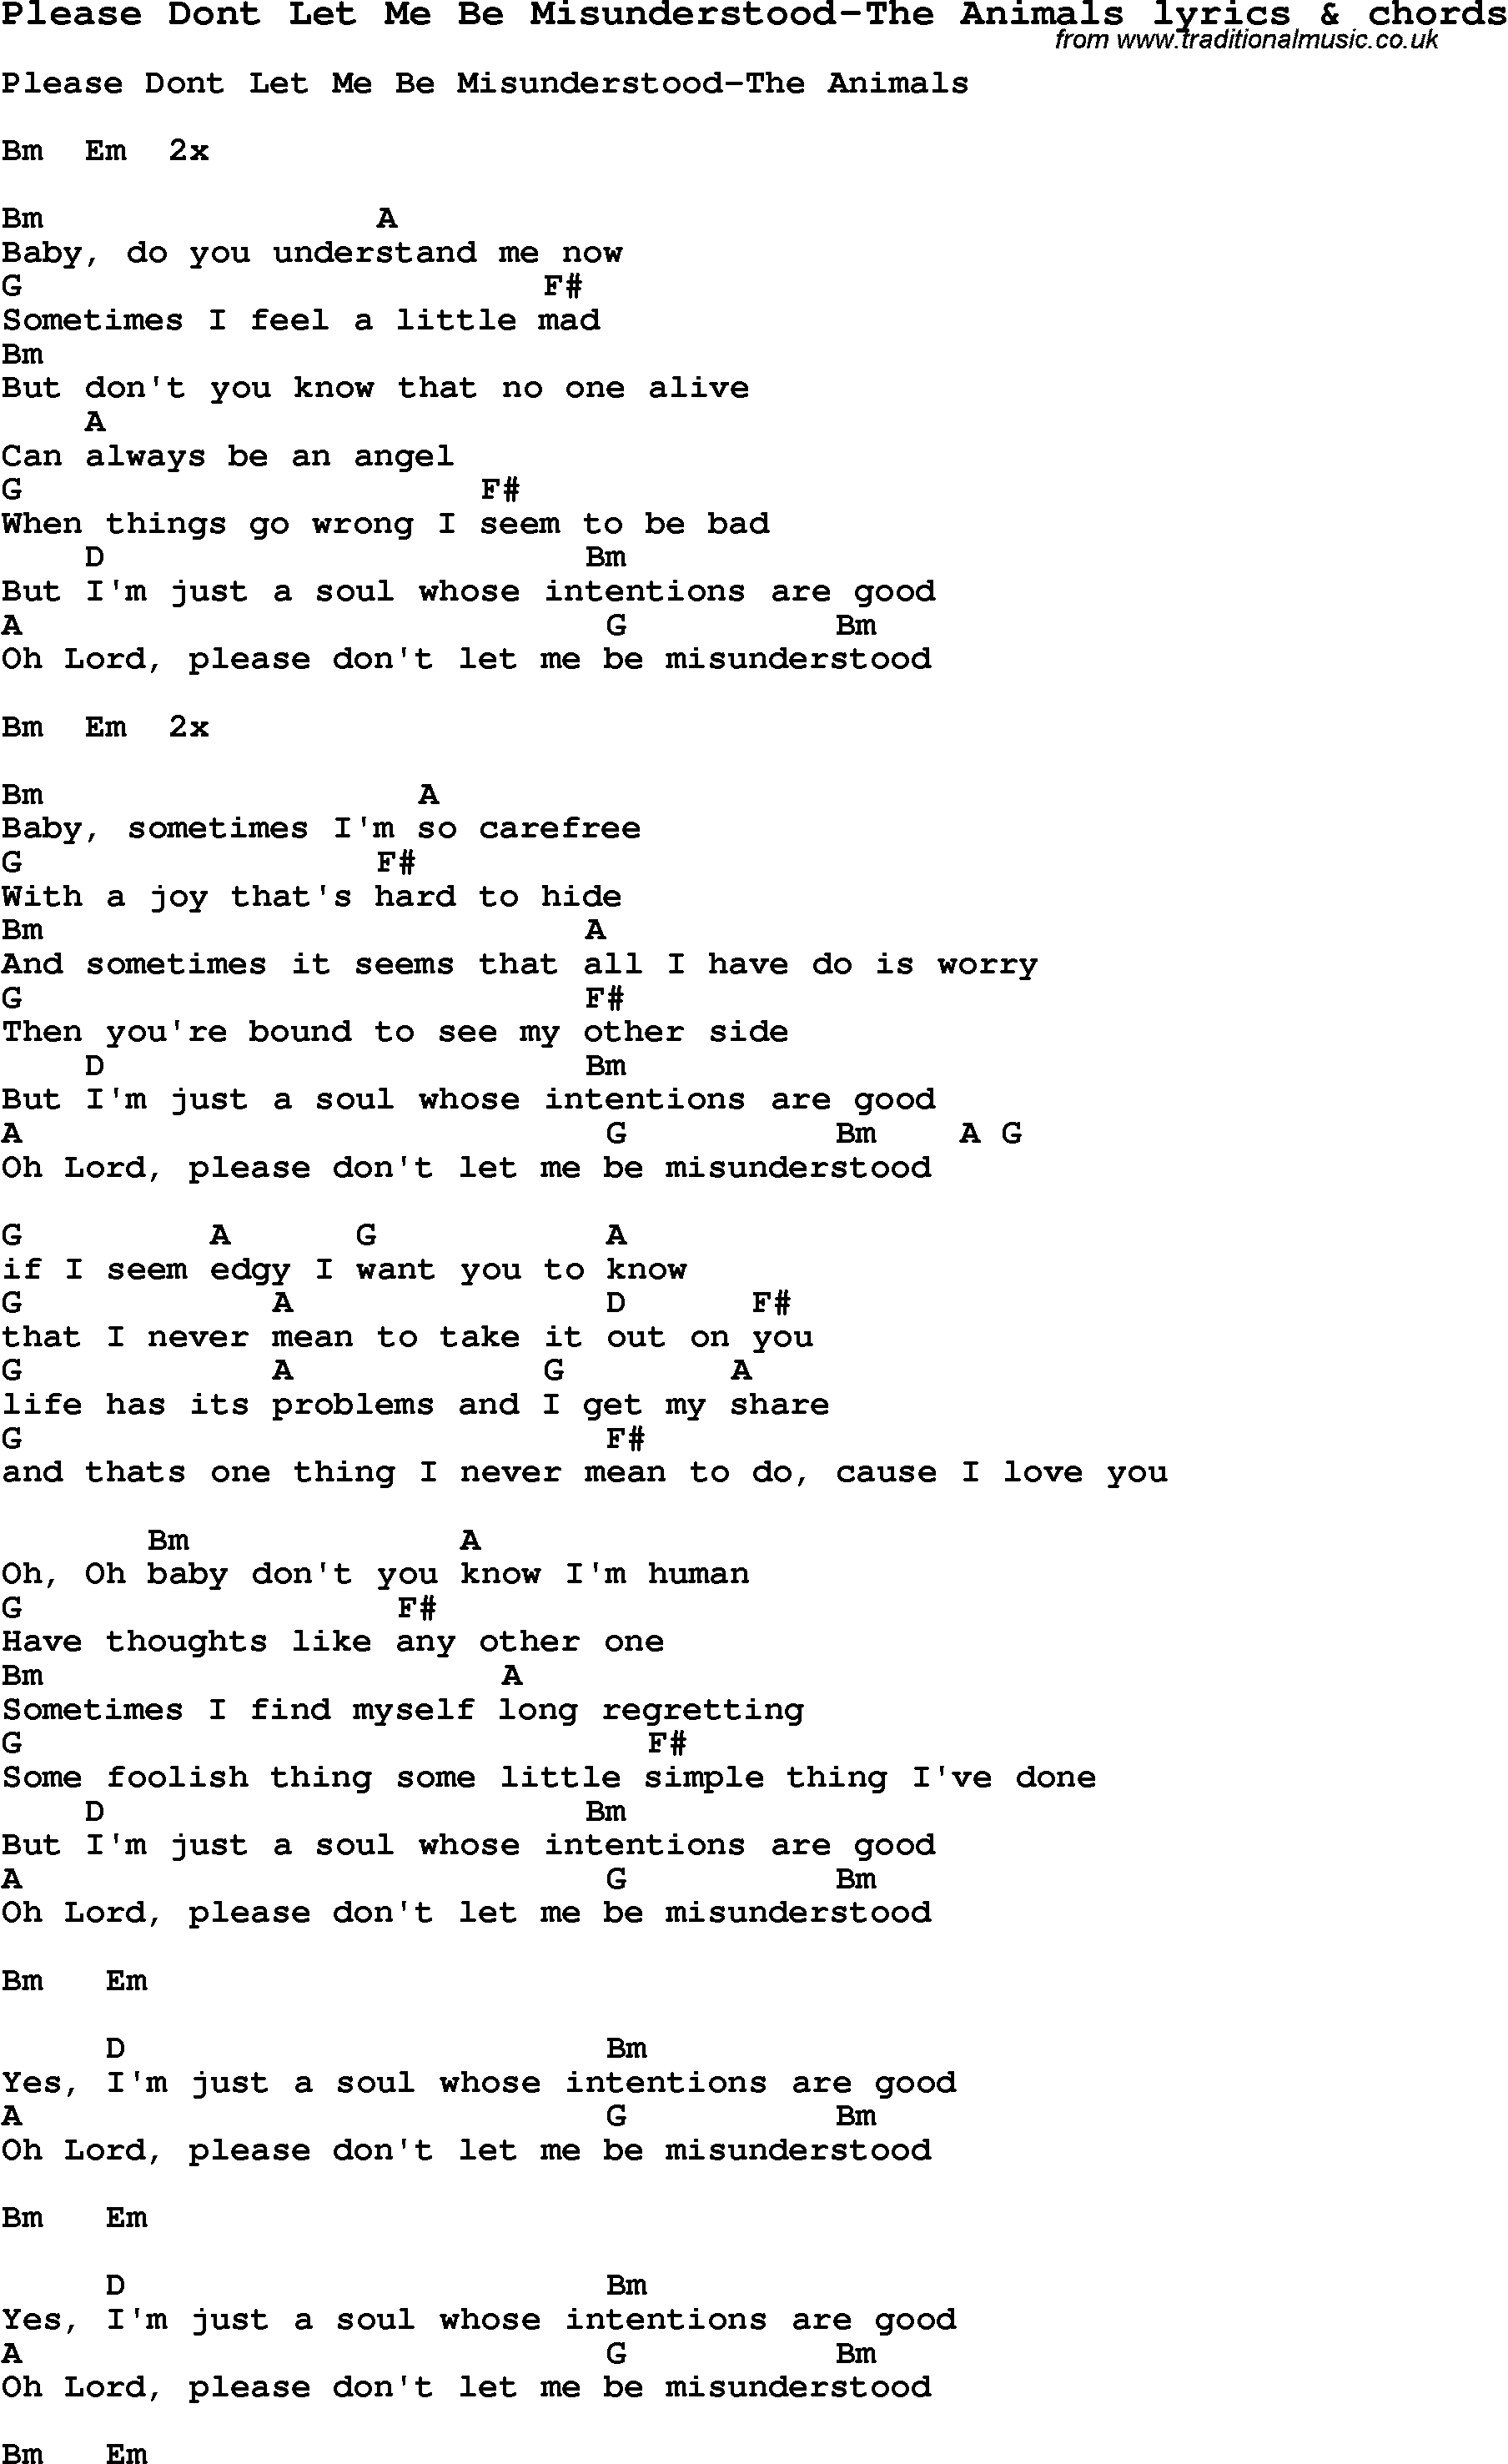 Love song lyrics forplease dont let me be misunderstood the love song lyrics forplease dont let me be misunderstood the animals with chords hexwebz Choice Image